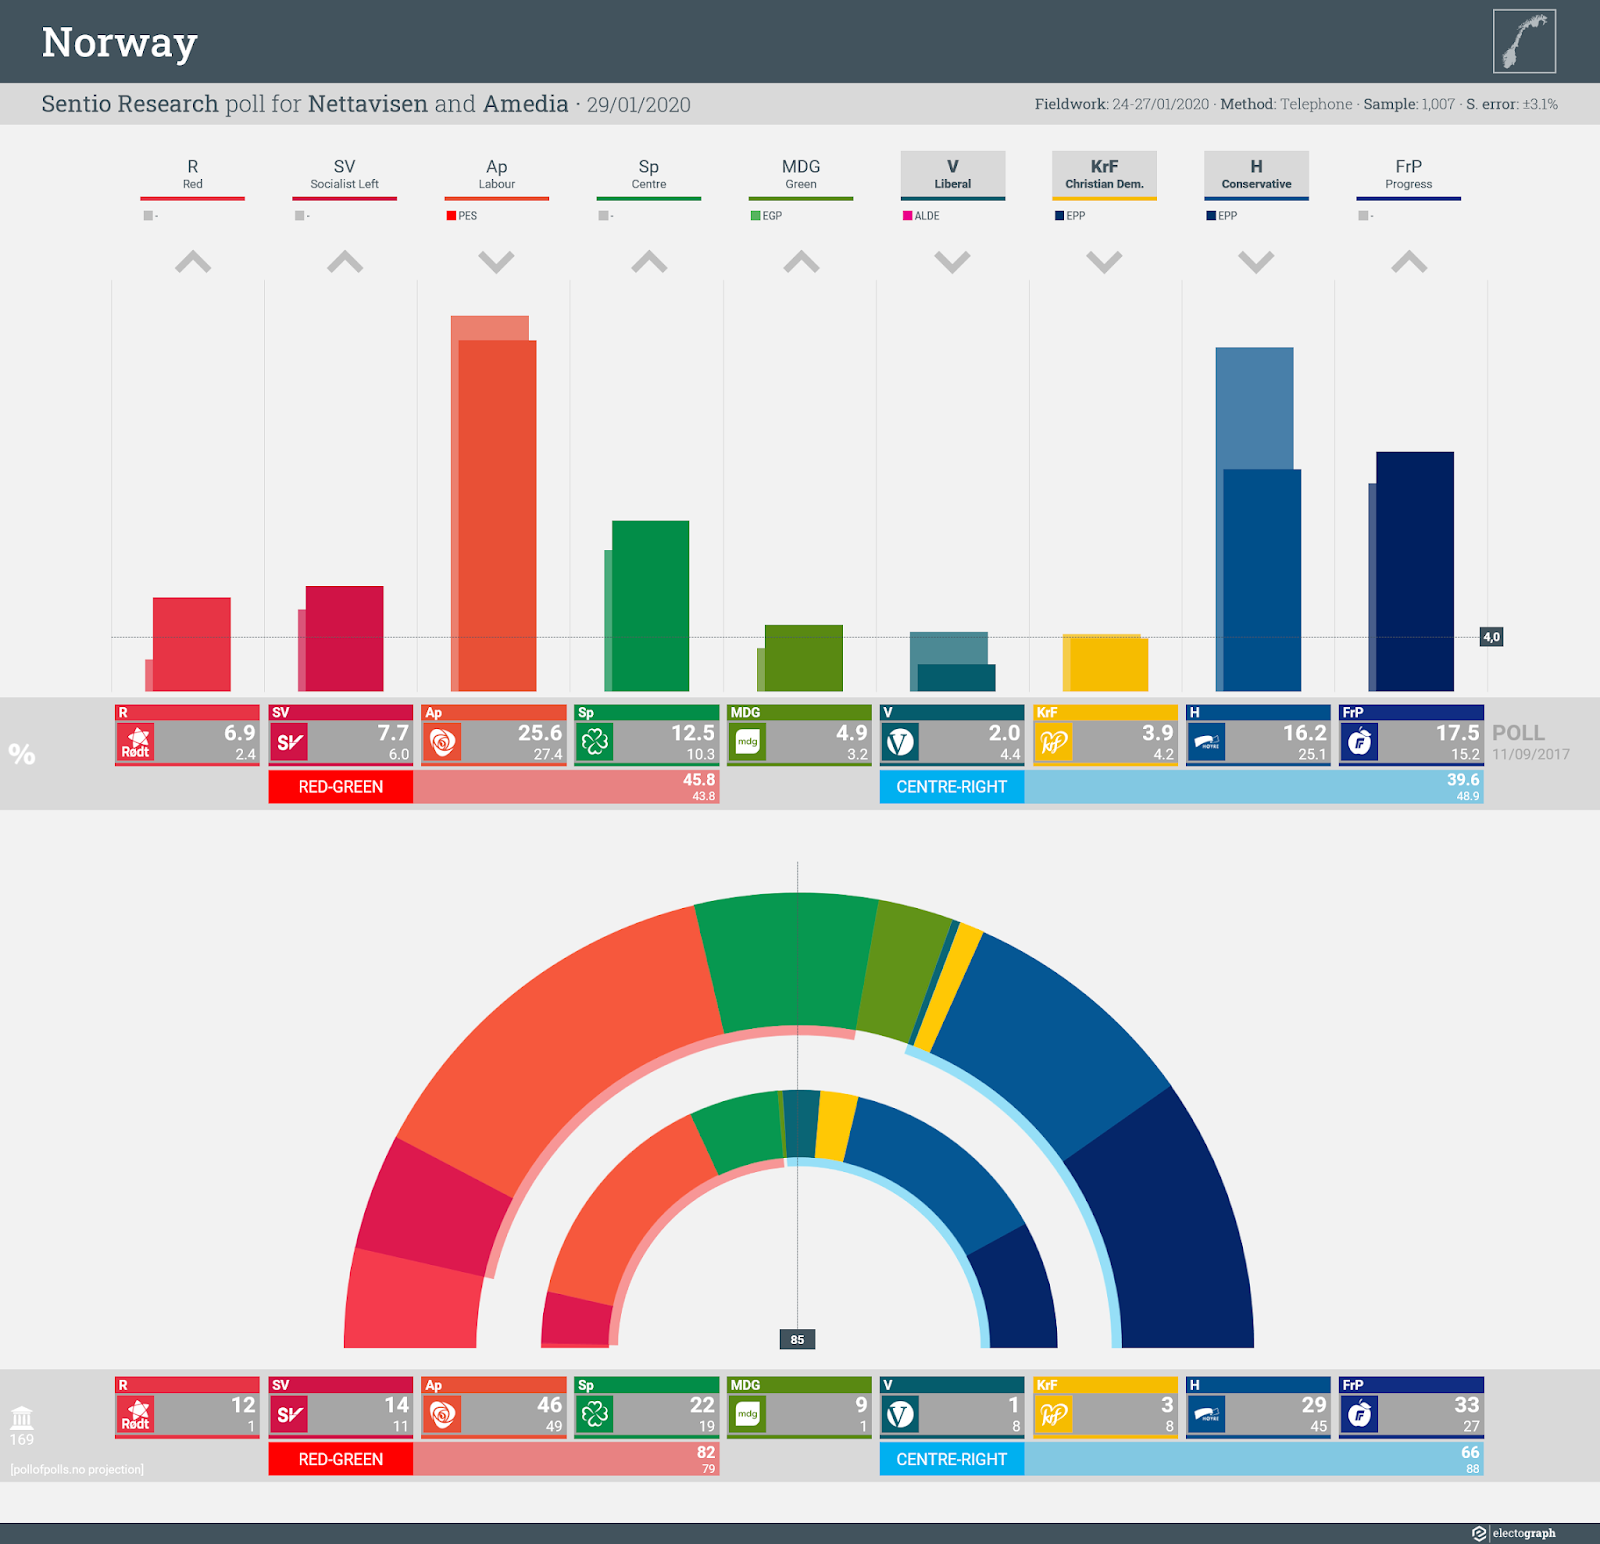 NORWAY: Sentio Research poll chart for Nettavisen and Amedia, 29 January 2020